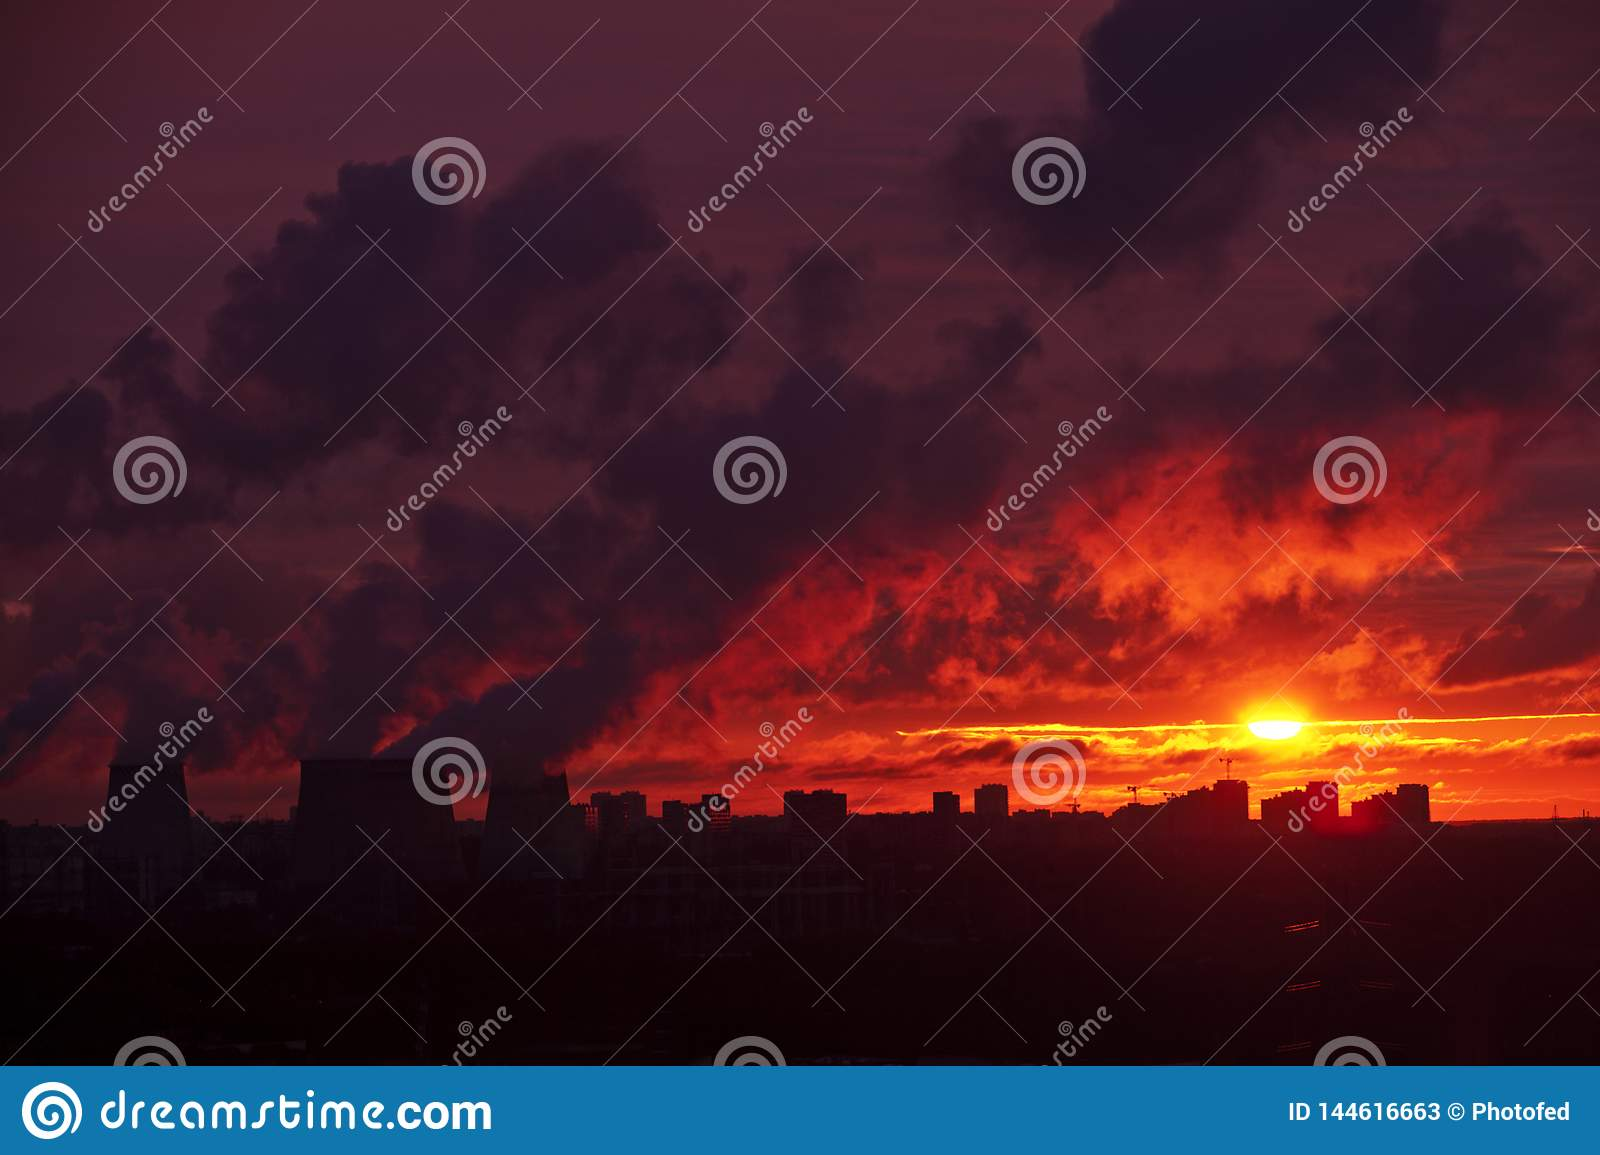 Cityscape at sunset, factory chimneys smoke, industrial landscape, night, sunset over the city